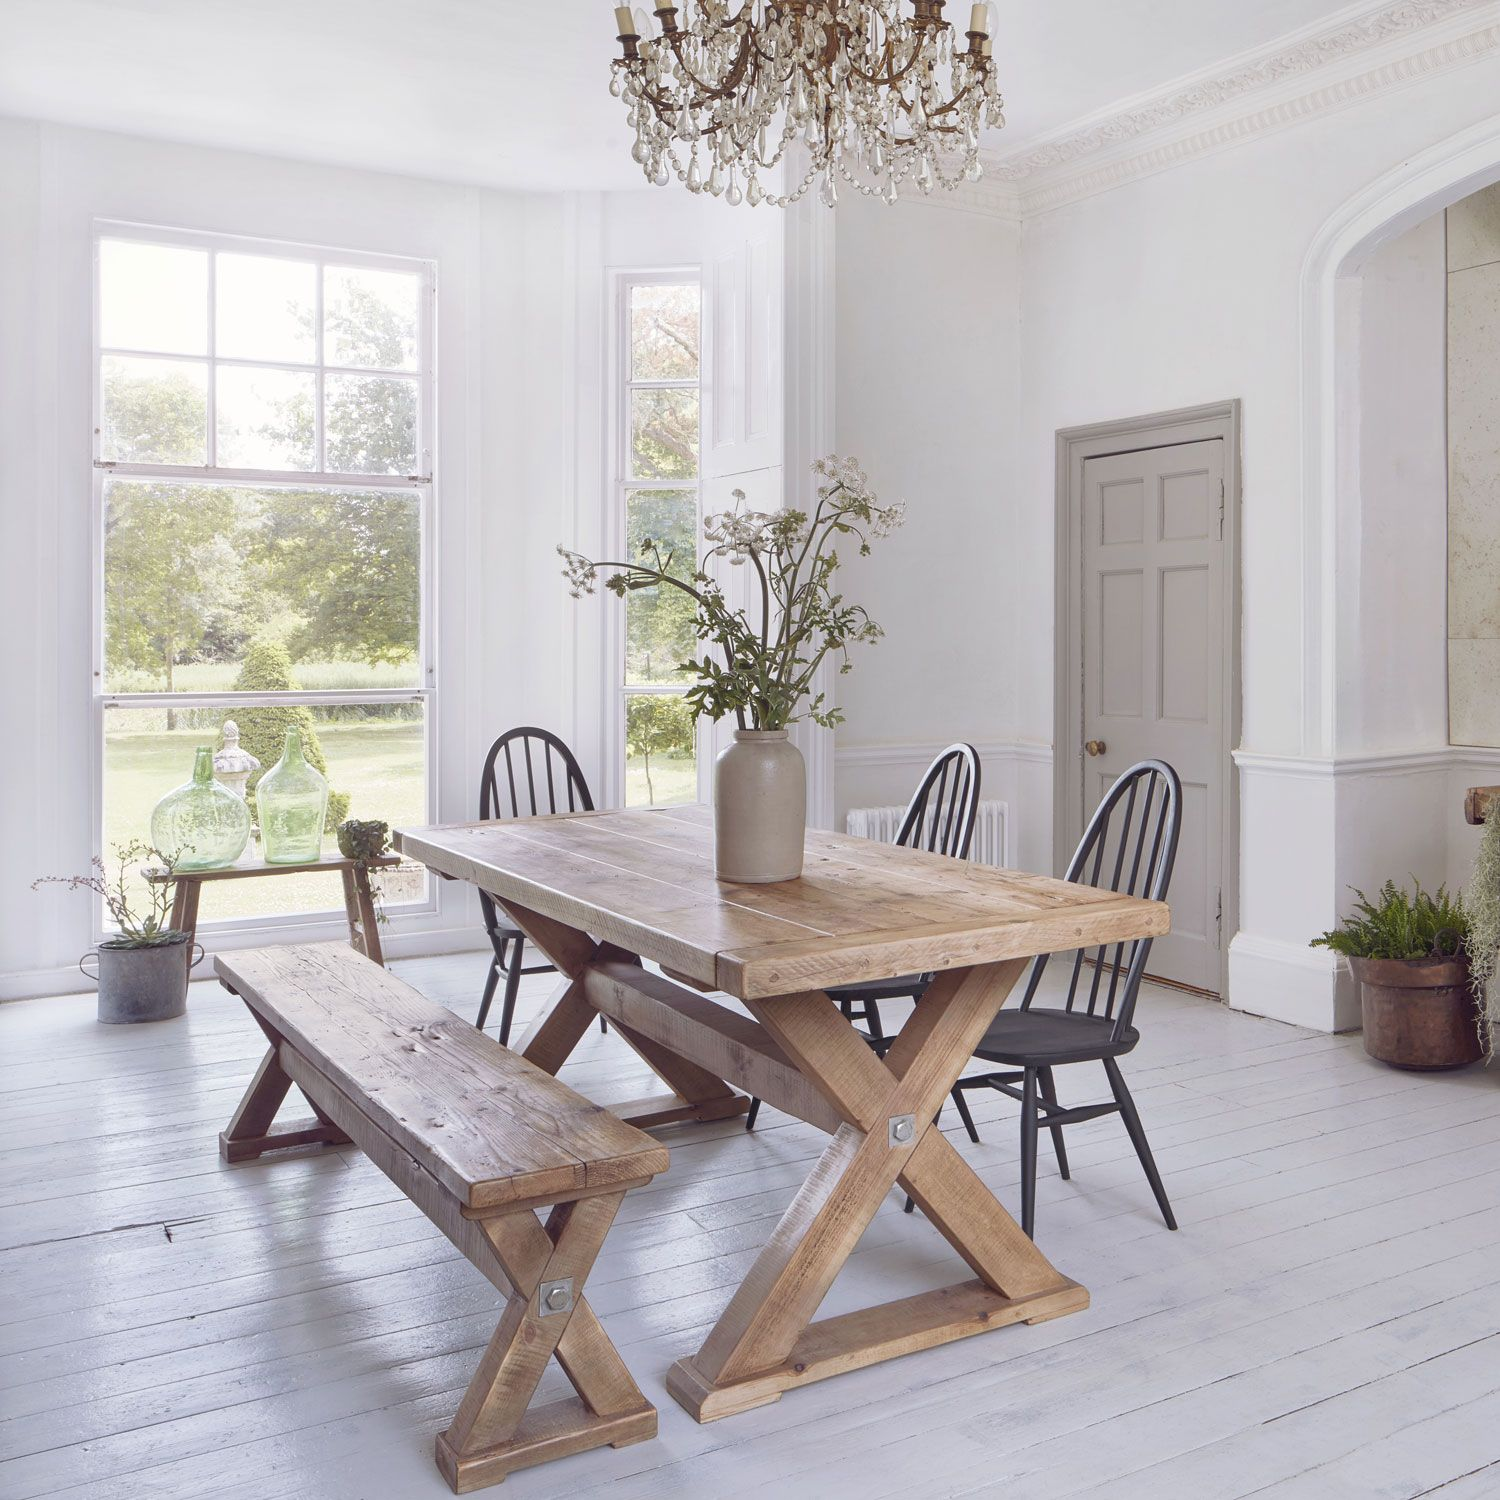 Reclaimed Wood Plank Trestle Dining Table | Trestle dining tables ...